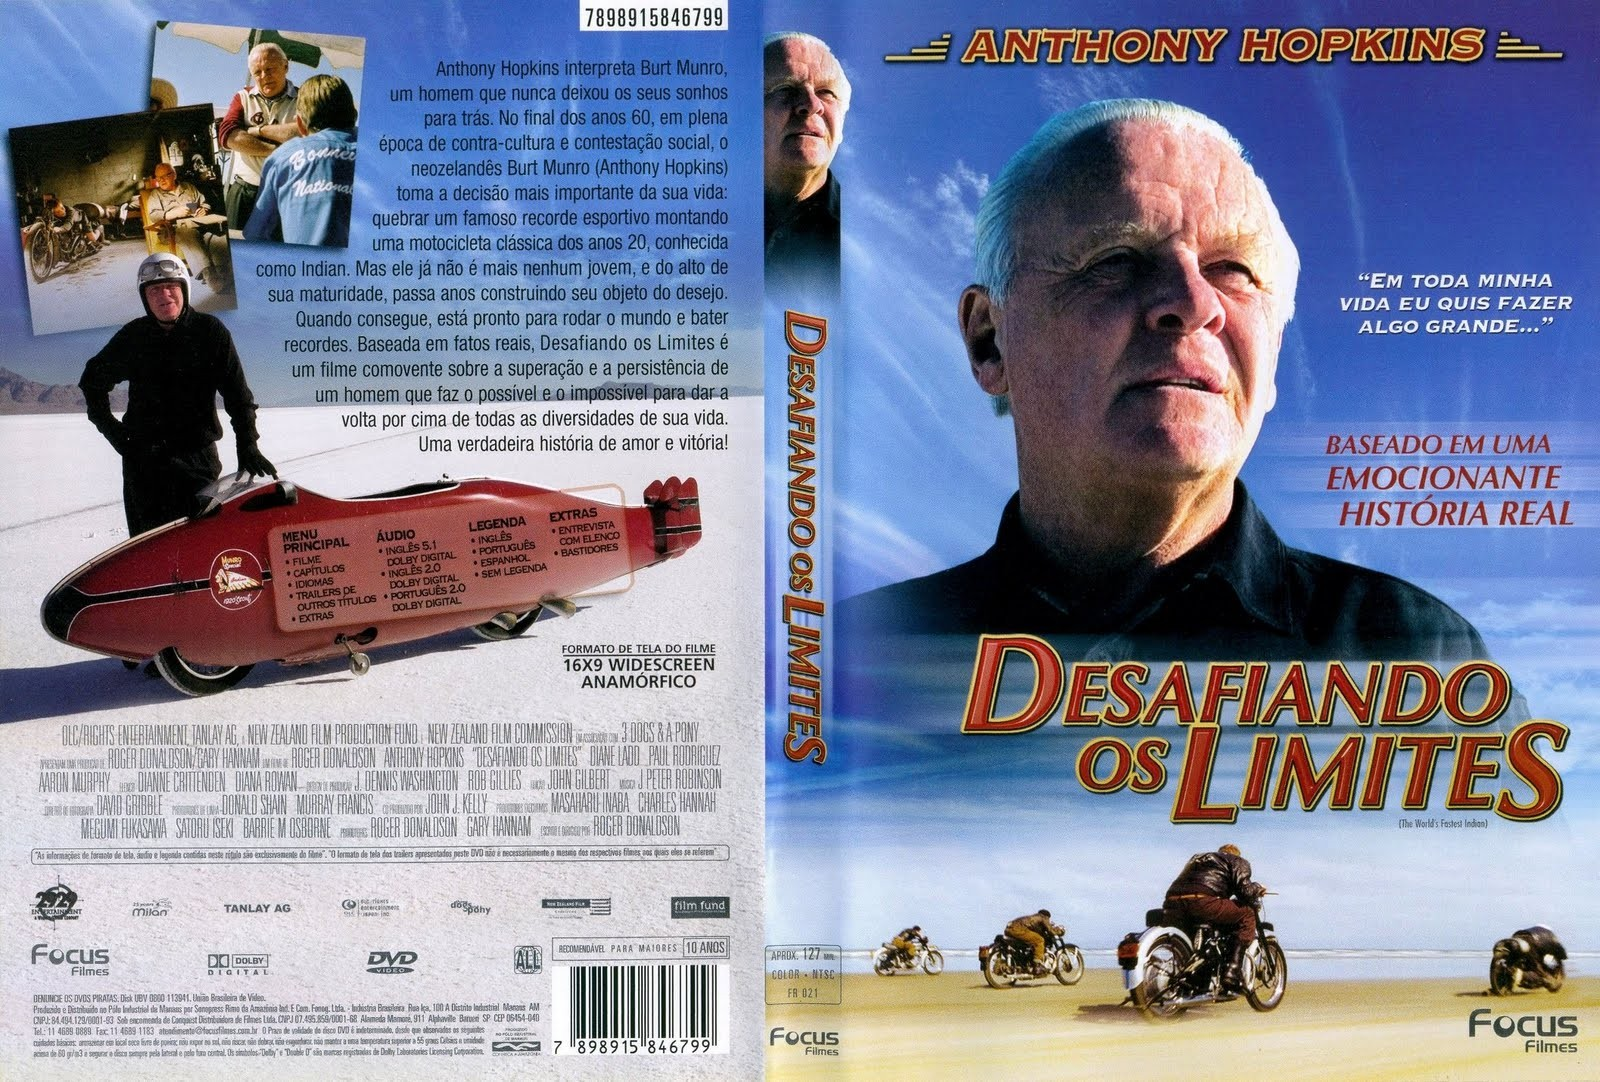 DVD LACRADO DESAFIANDO OS LIMITES ANTHONY HOPKINS - AUDIO EM PORTUGUES